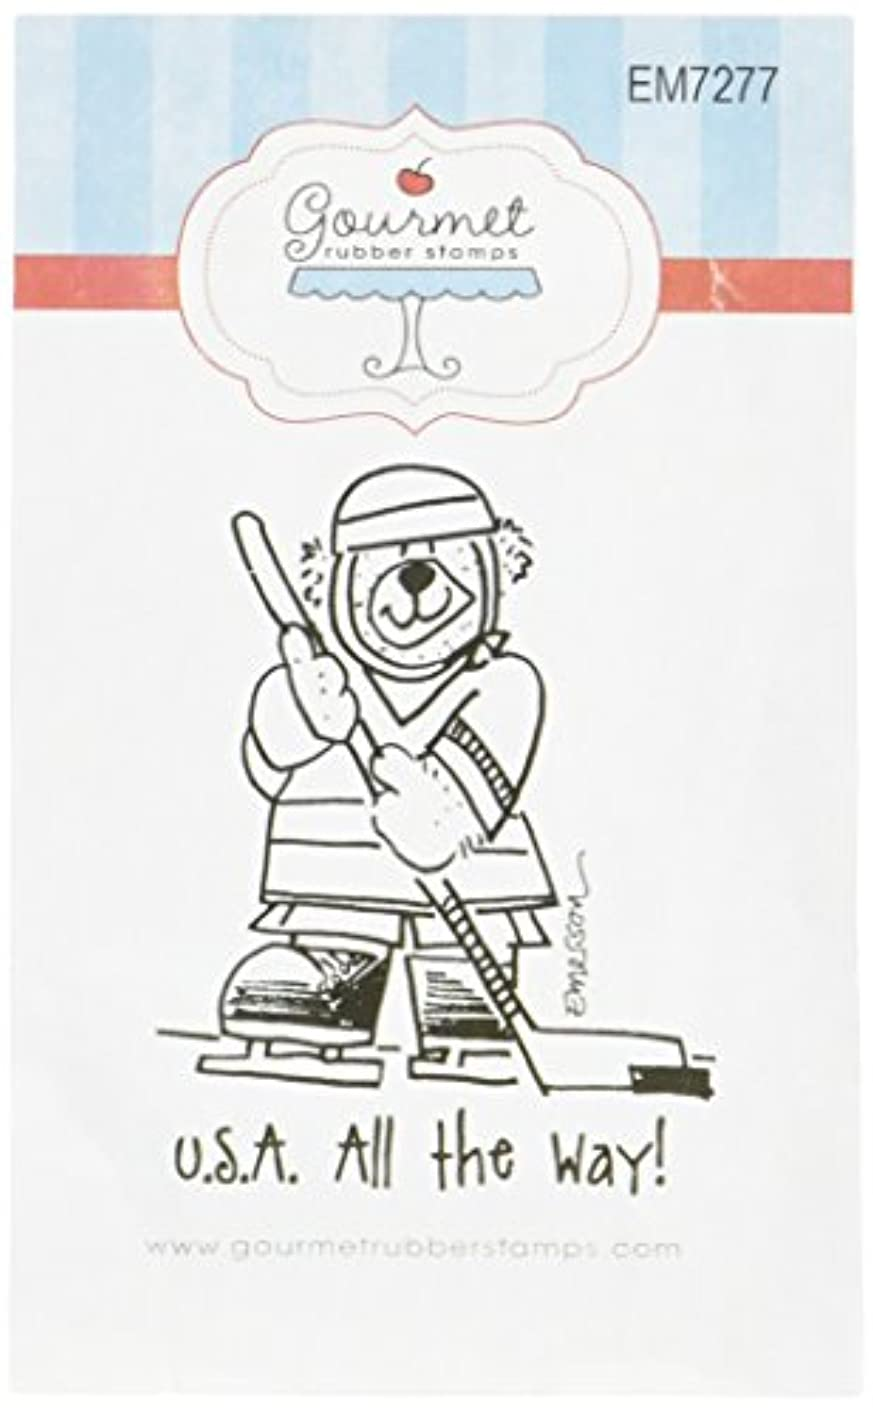 Gourmet Rubber Stamps USA All The Way Cling Stamps, 2.75 x 4.75